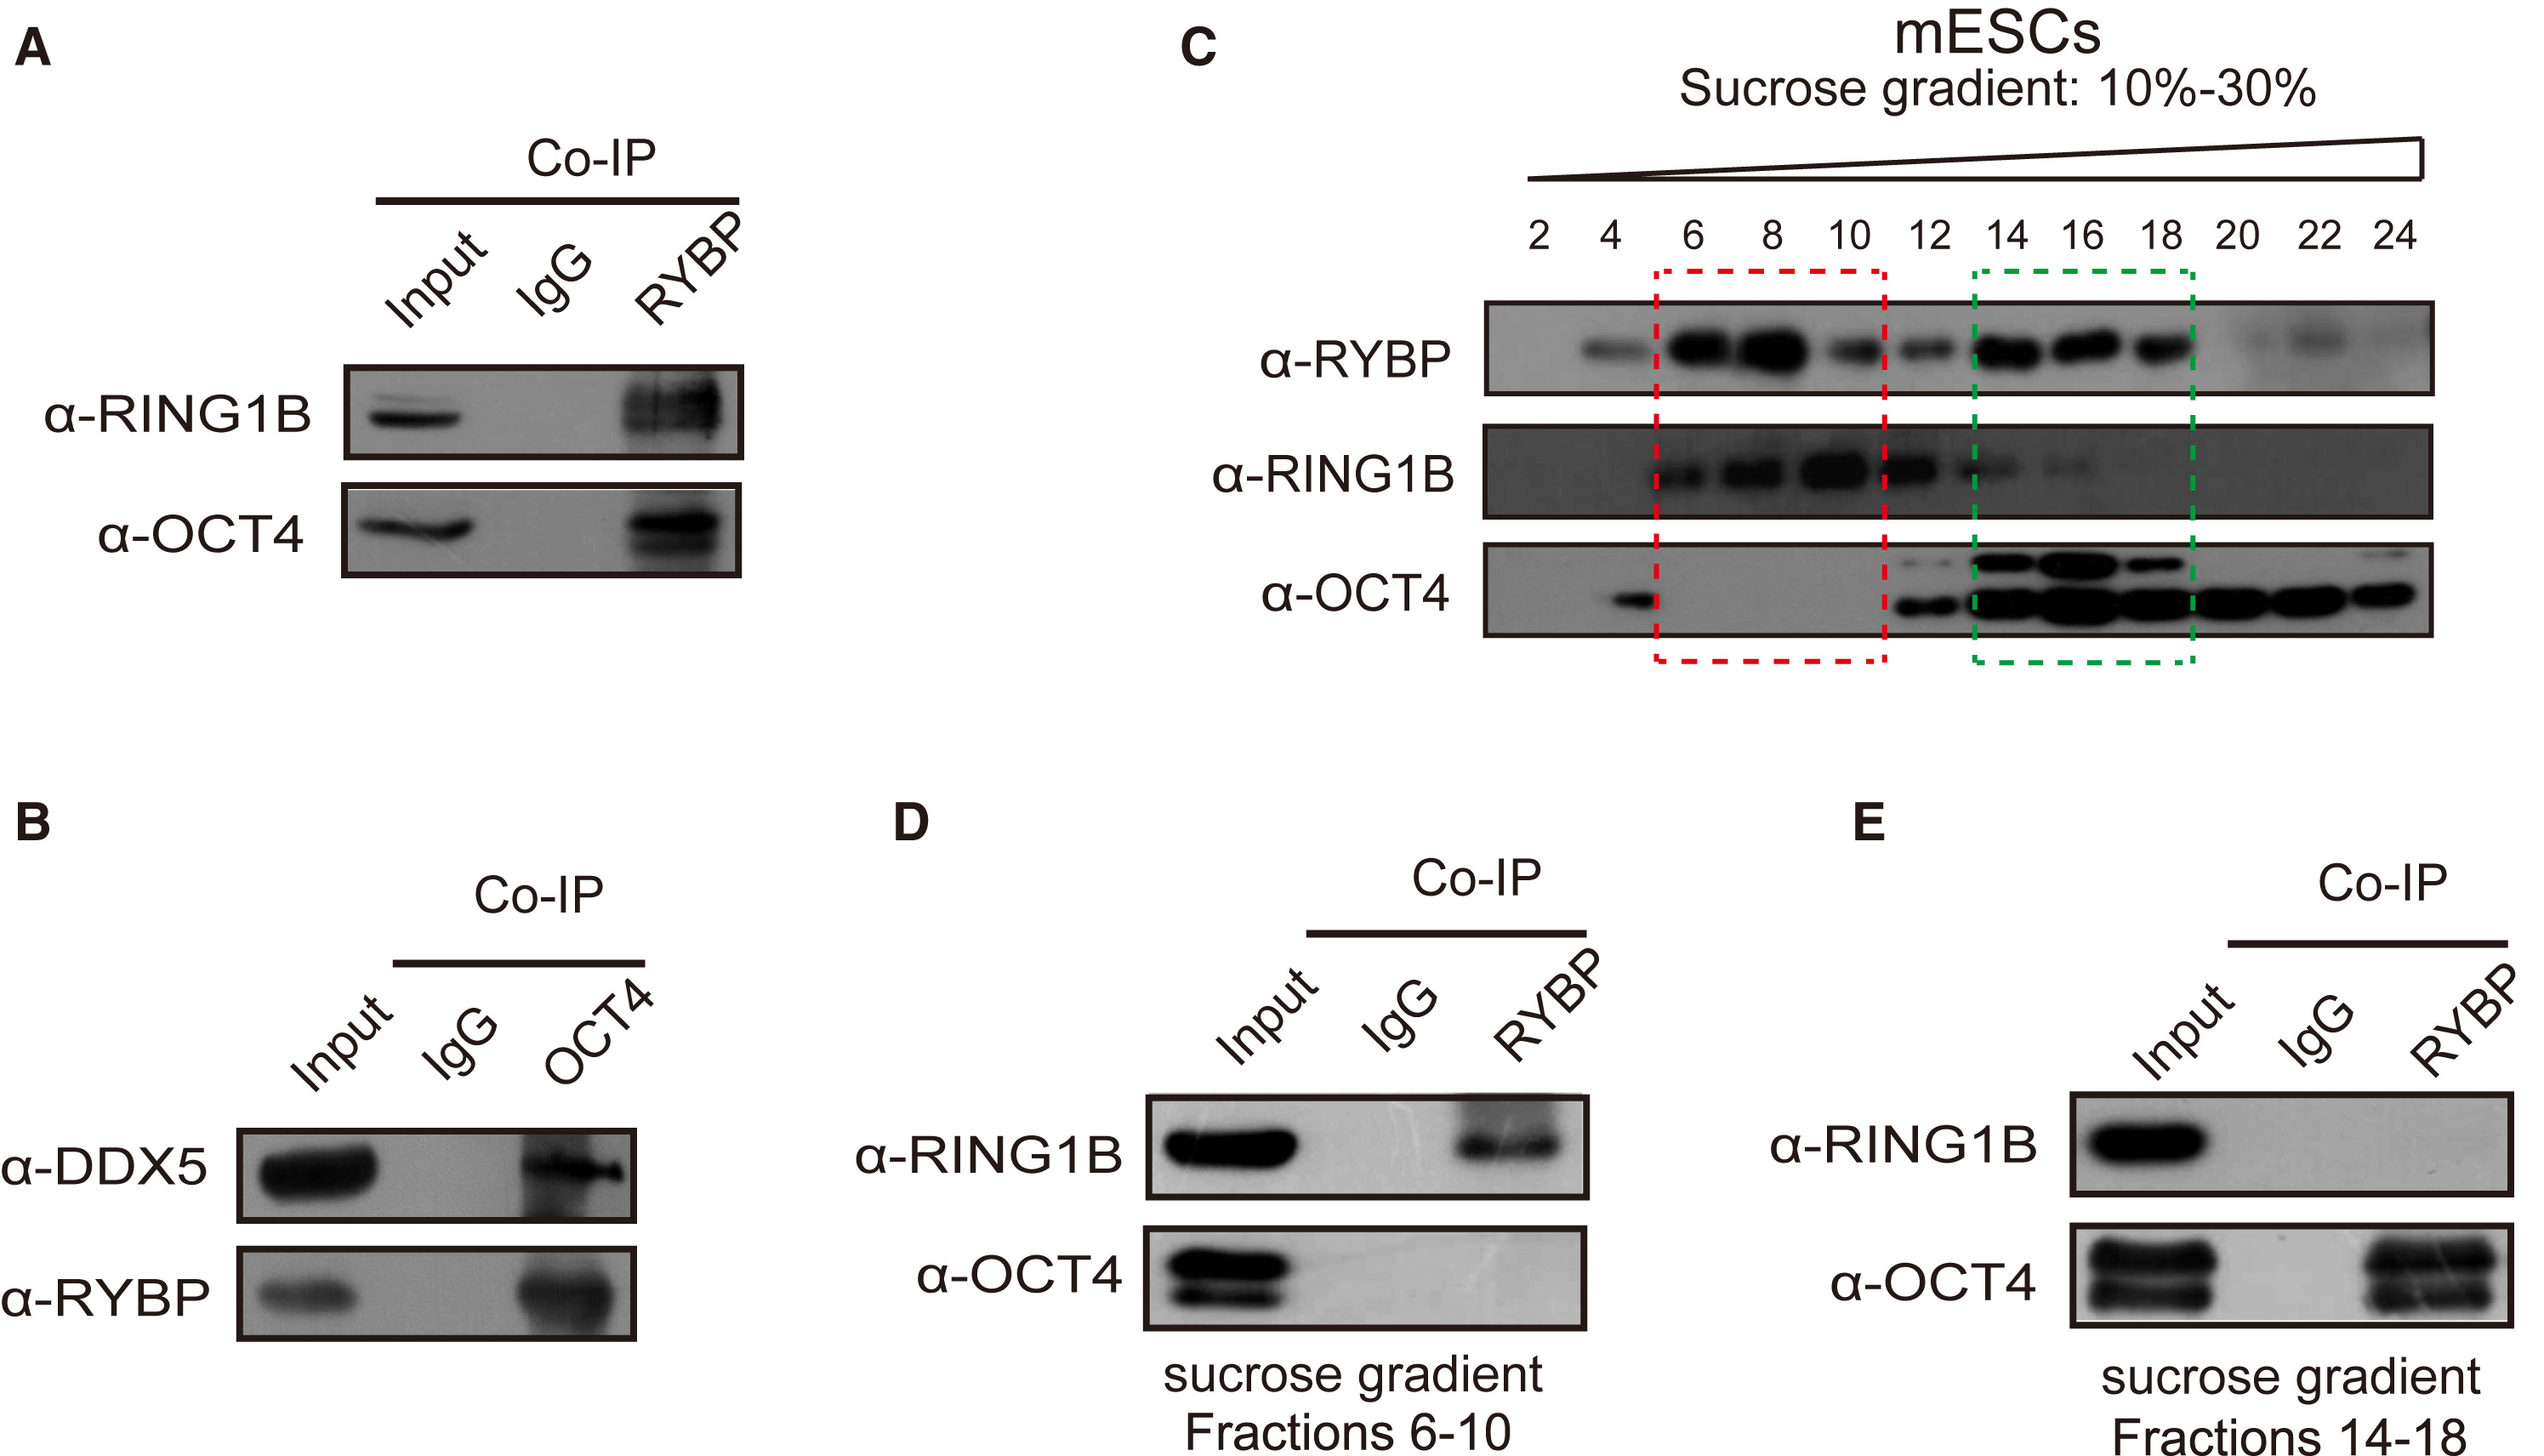 Rna Helicase Ddx5 Inhibits Reprogramming To Pluripotency By Mirna Based Repression Of Rybp And